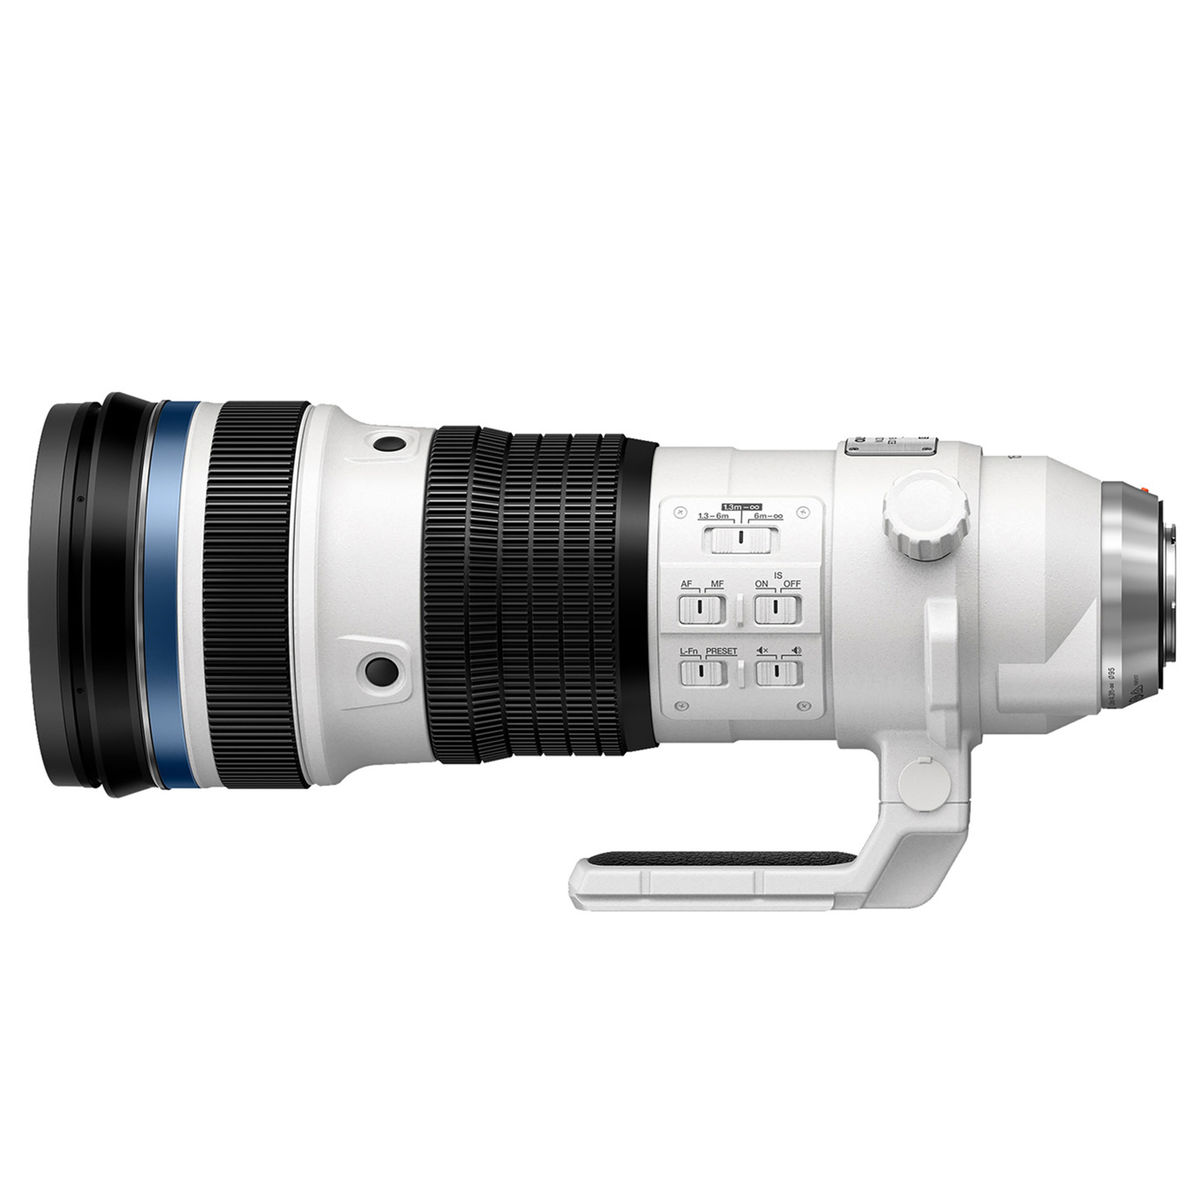 #UUTUUS M.ZUIKO Digital ED 150-400mm F4.5 TC1.25x IS PRO